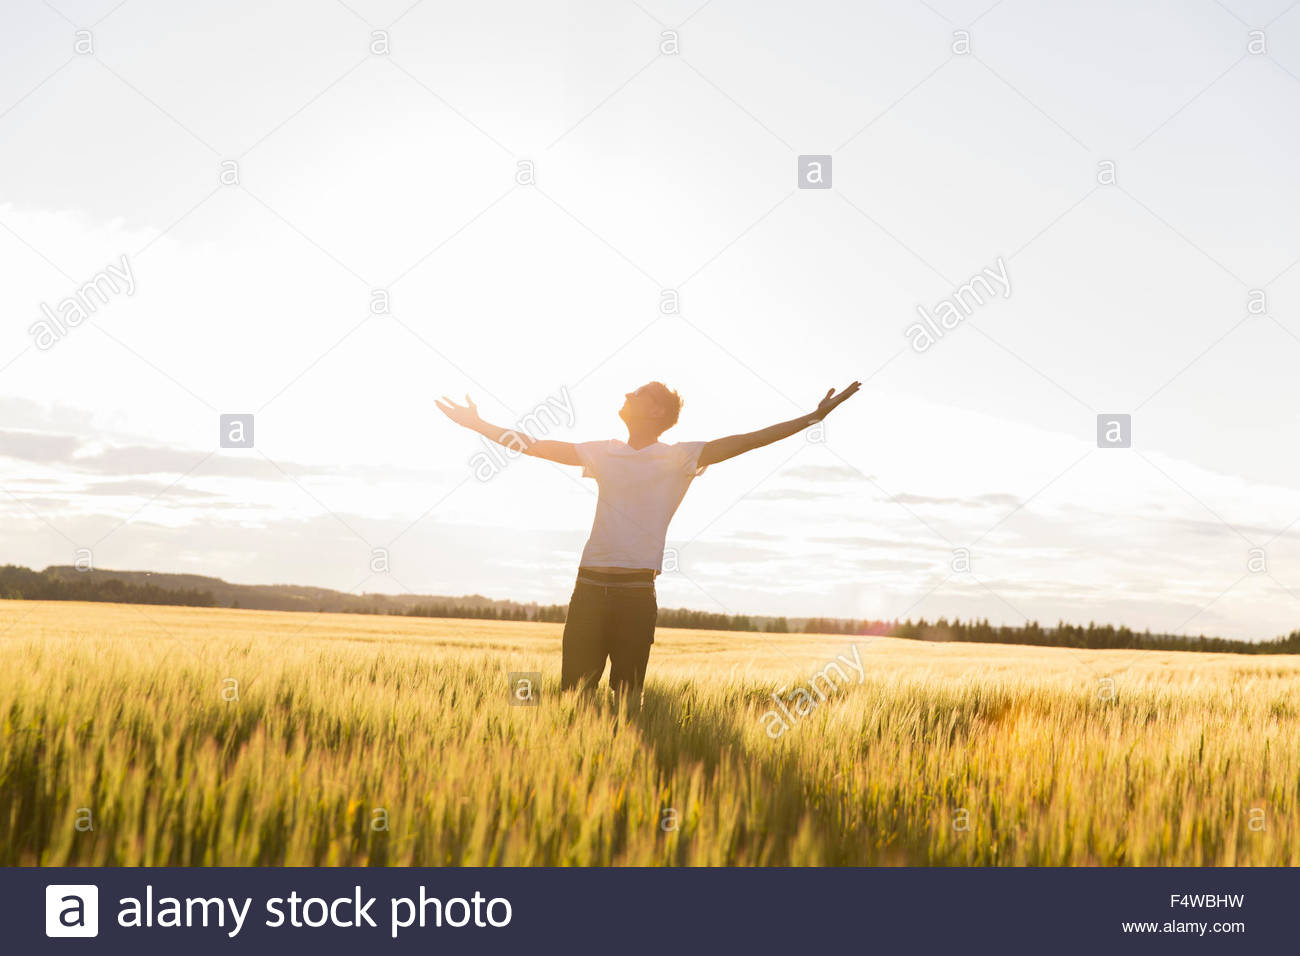 Man in sunny field with arms raised - Stock Image